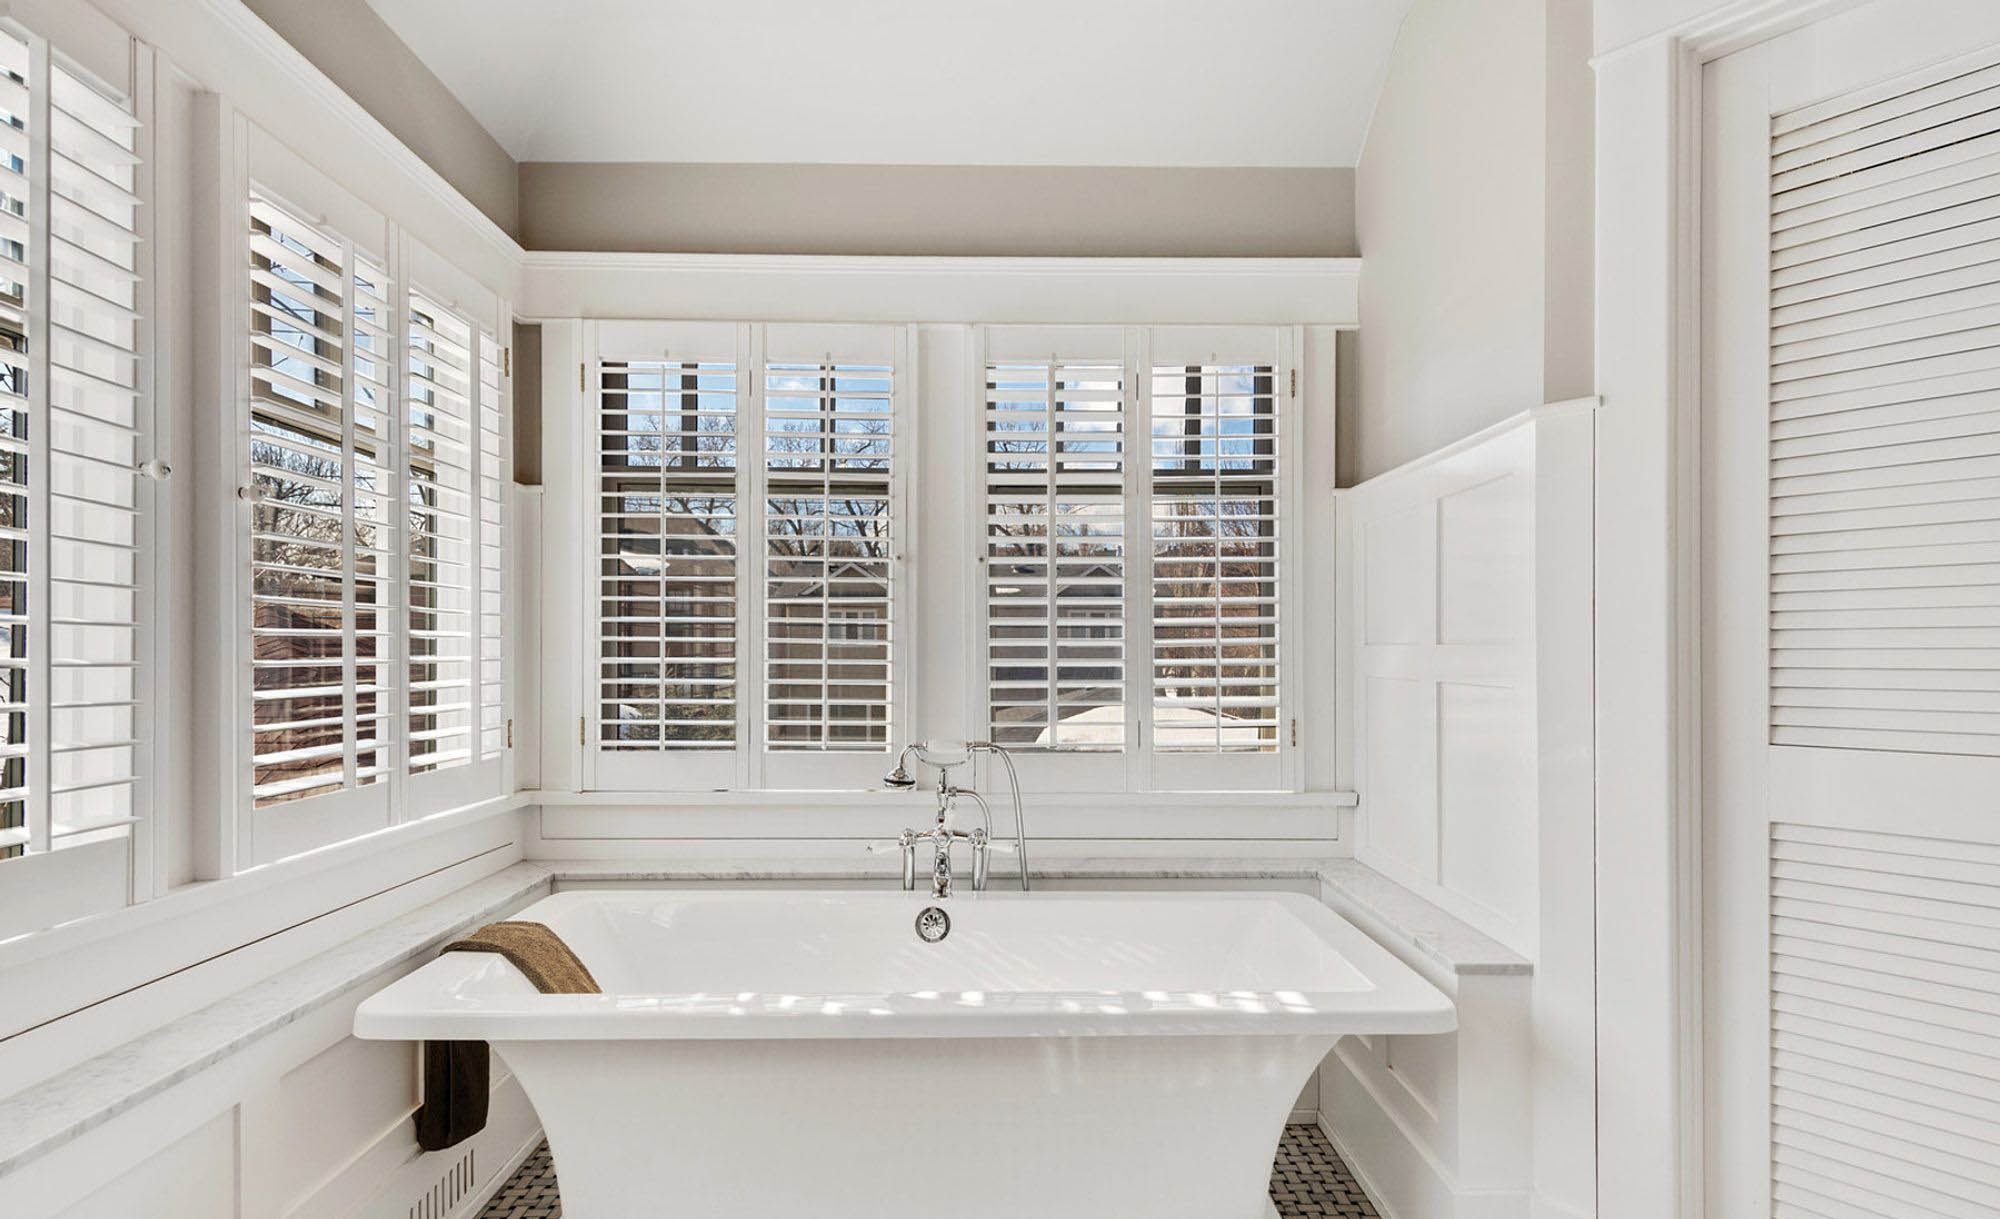 Box beam wainscoting design. Bathroom wall paneling adds sophistication like no other wall finish can.